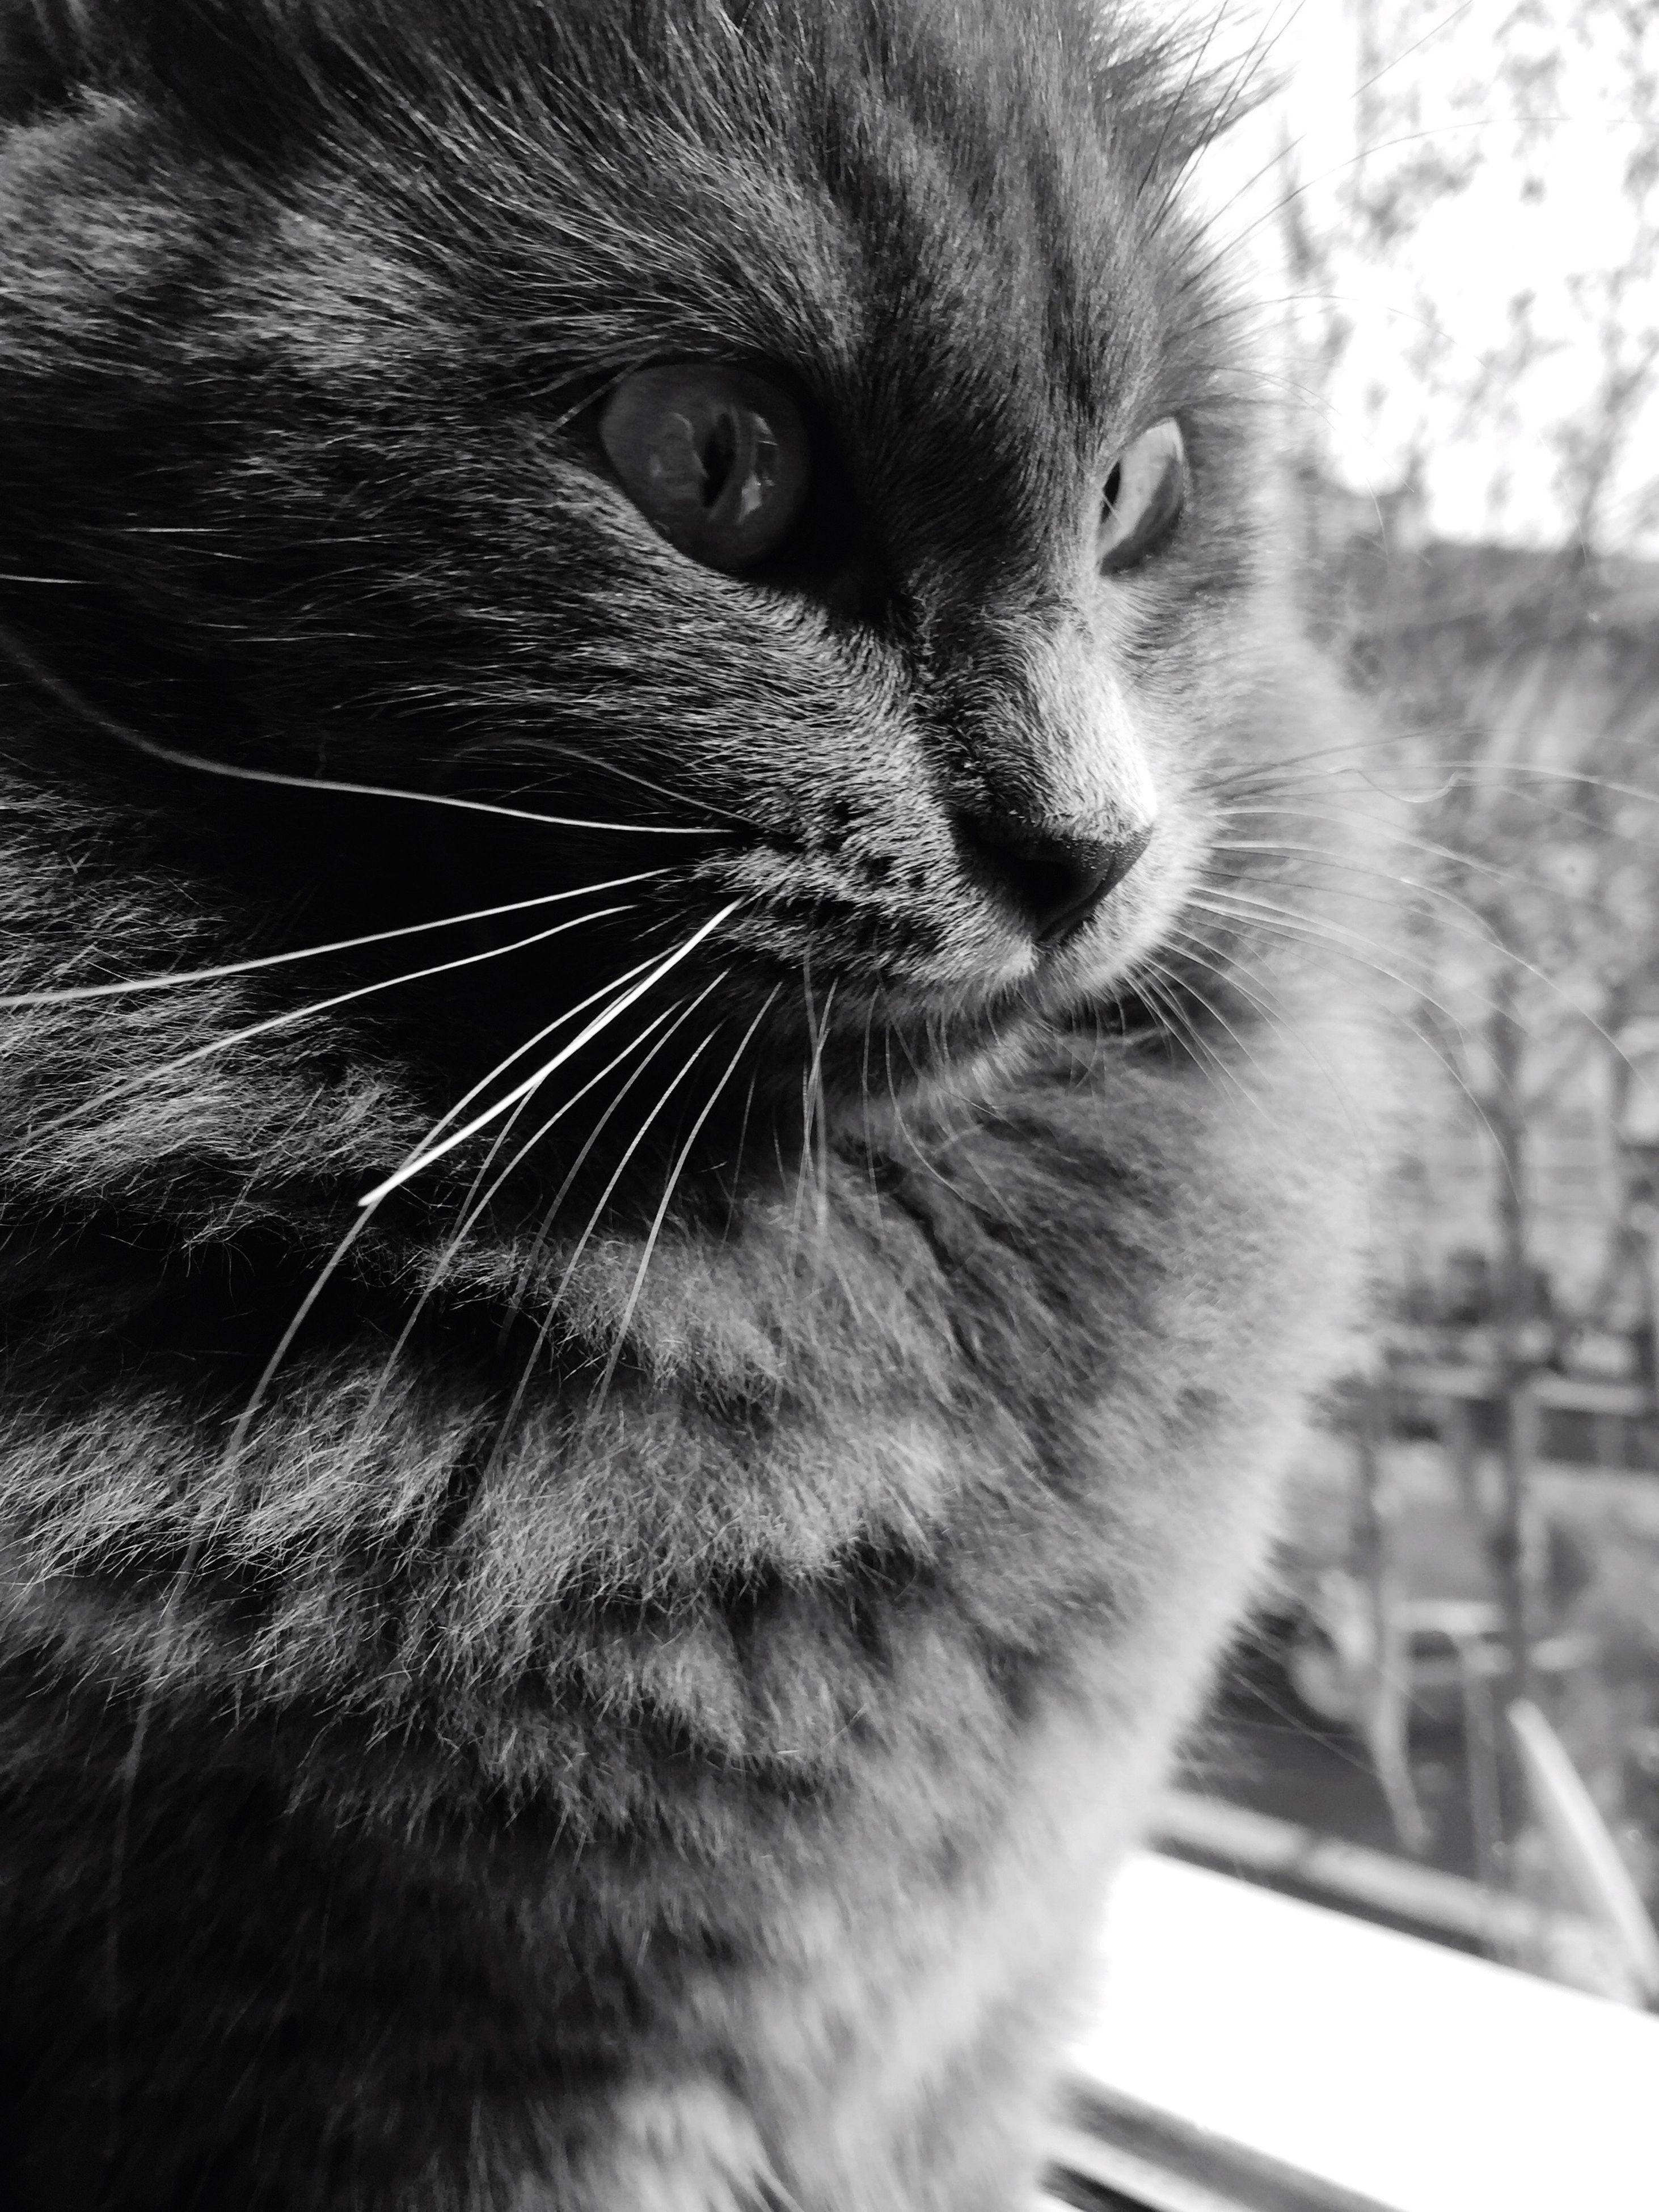 domestic cat, one animal, pets, cat, animal themes, domestic animals, feline, whisker, mammal, close-up, animal head, focus on foreground, indoors, looking away, animal eye, animal body part, staring, alertness, whiskers, selective focus